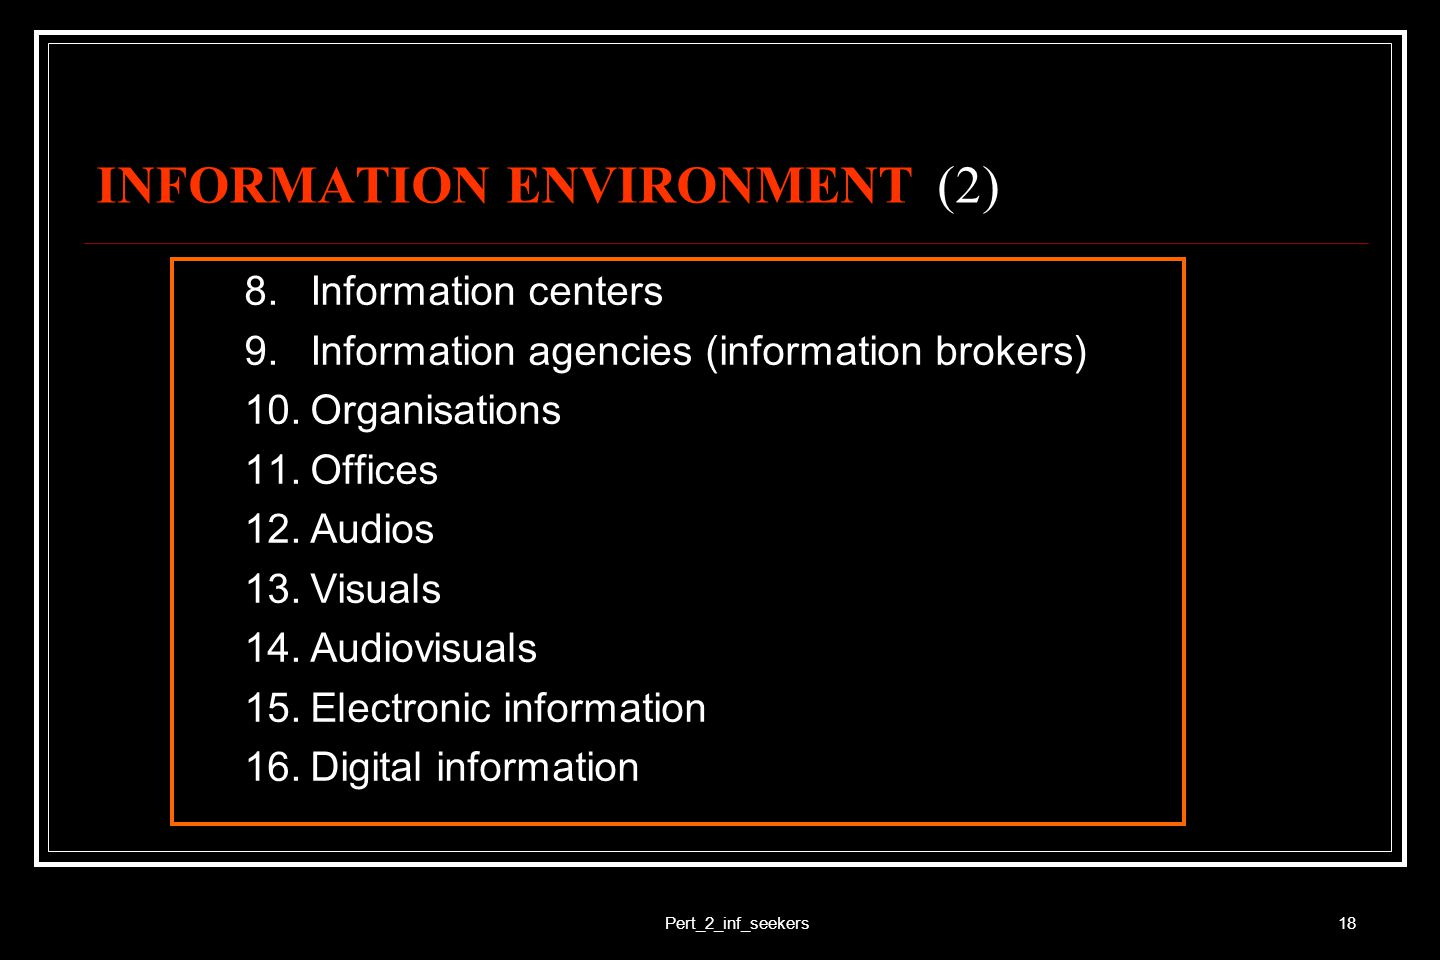 INFORMATION ENVIRONMENT (2)